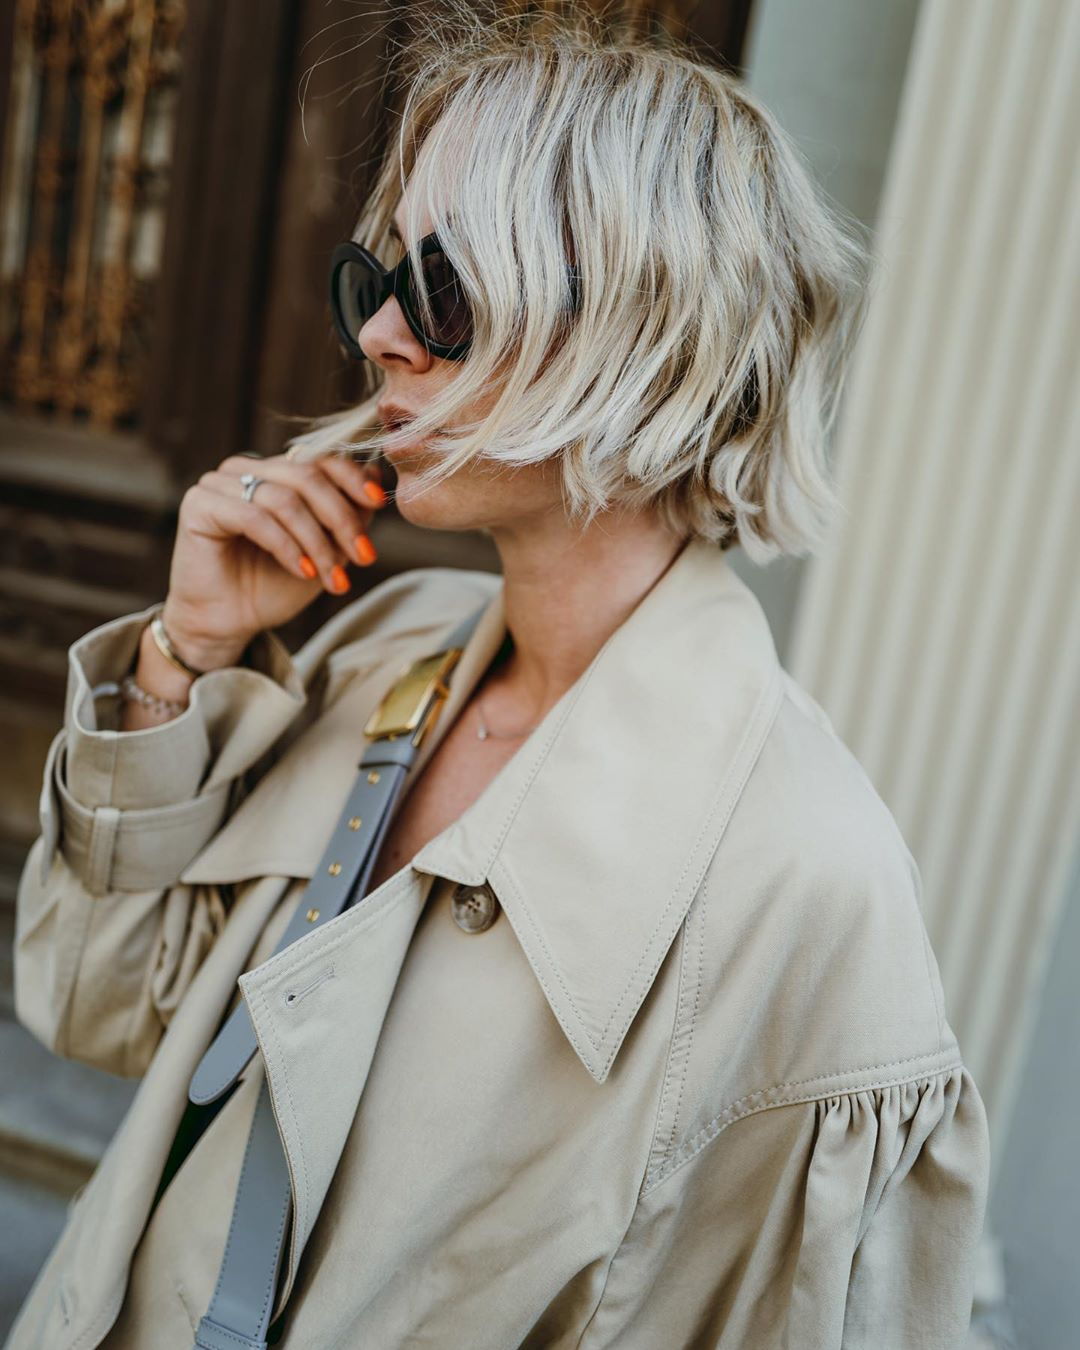 karin-teigl-hm-puff-sleeved-trench-coat-instagram